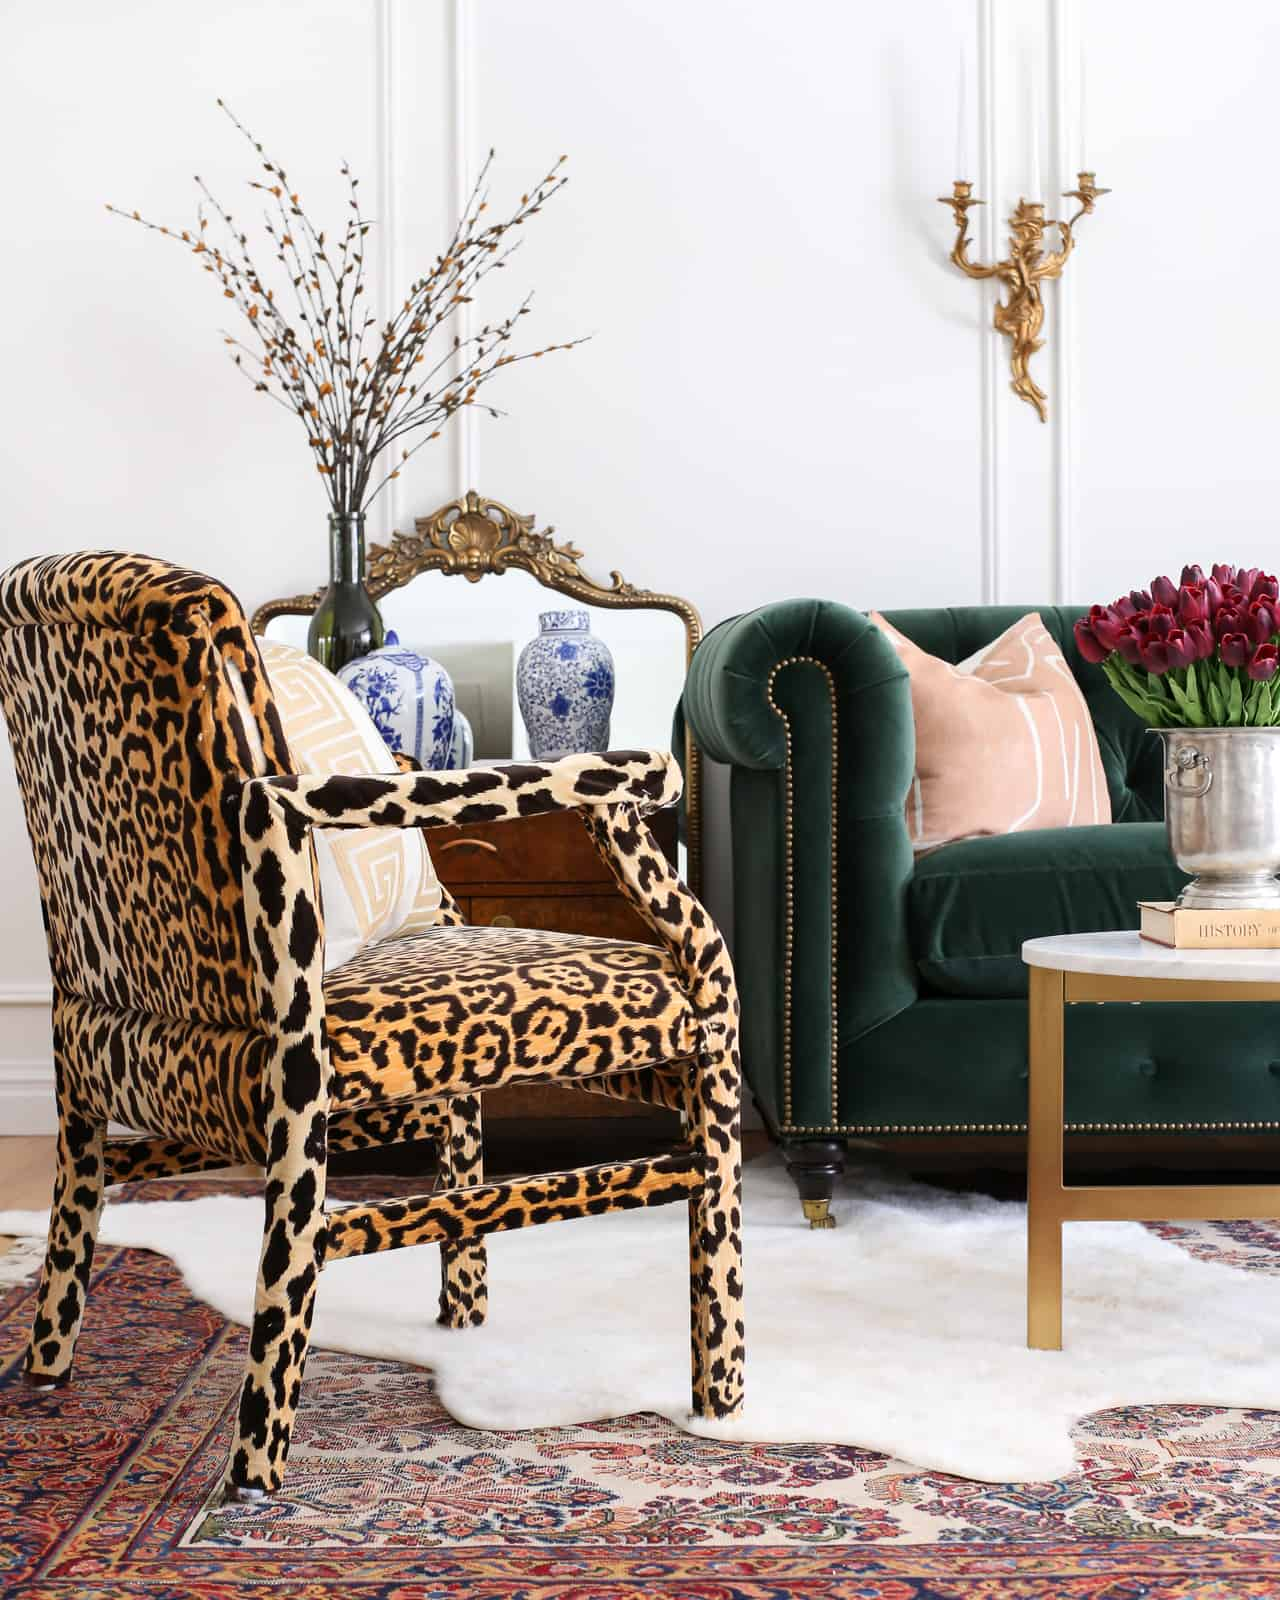 interior-design-green-sofa-leopard-chair-glam-living-room